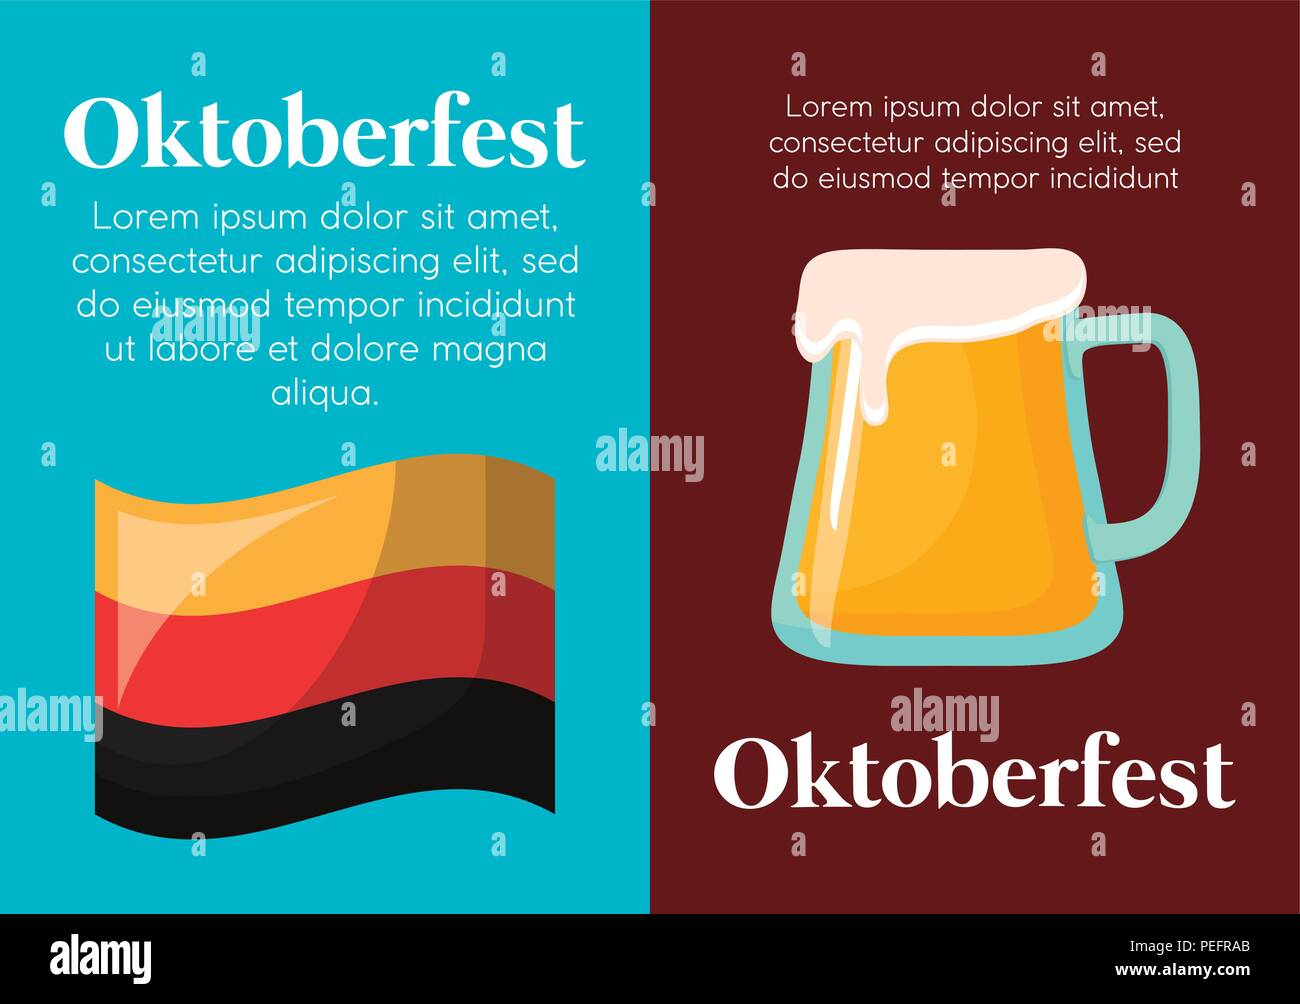 infographic of oktoberfest concept with germany flag and beer glass icon, colorful design. vector illustration - Stock Image